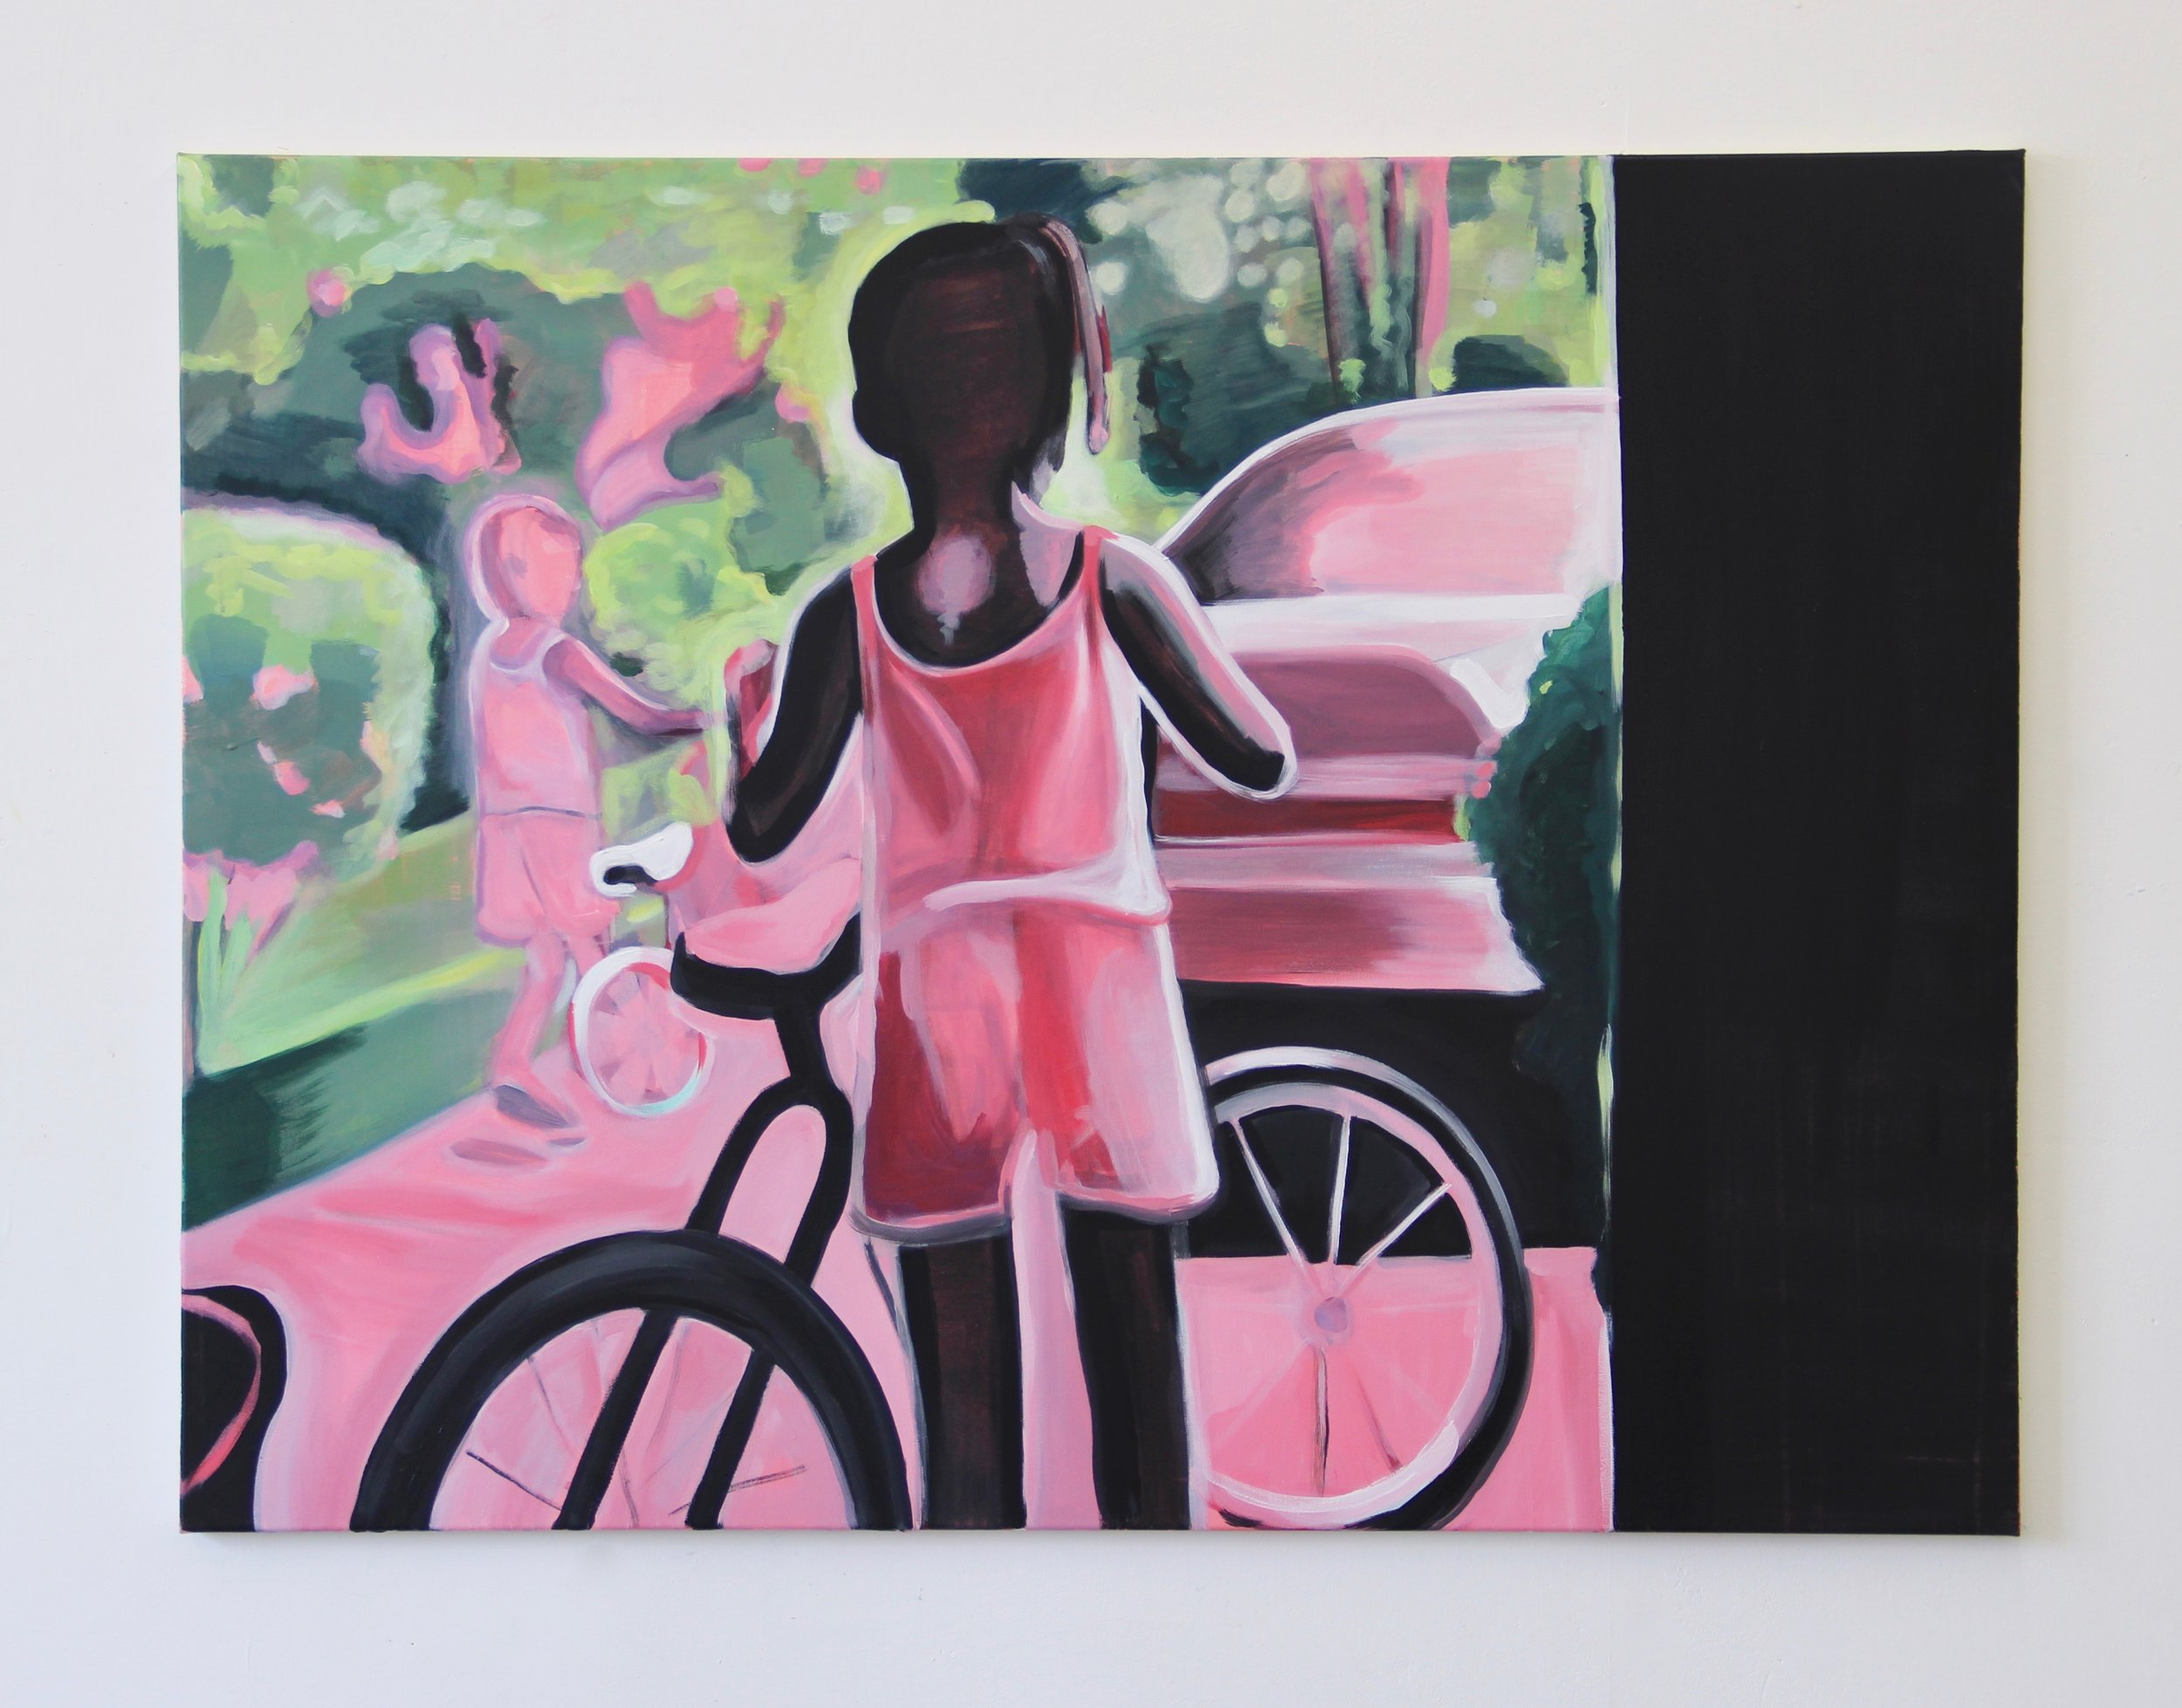 Biking , 2018 Acrylic on canvas 36 x 48 inches 91 x 122 cm